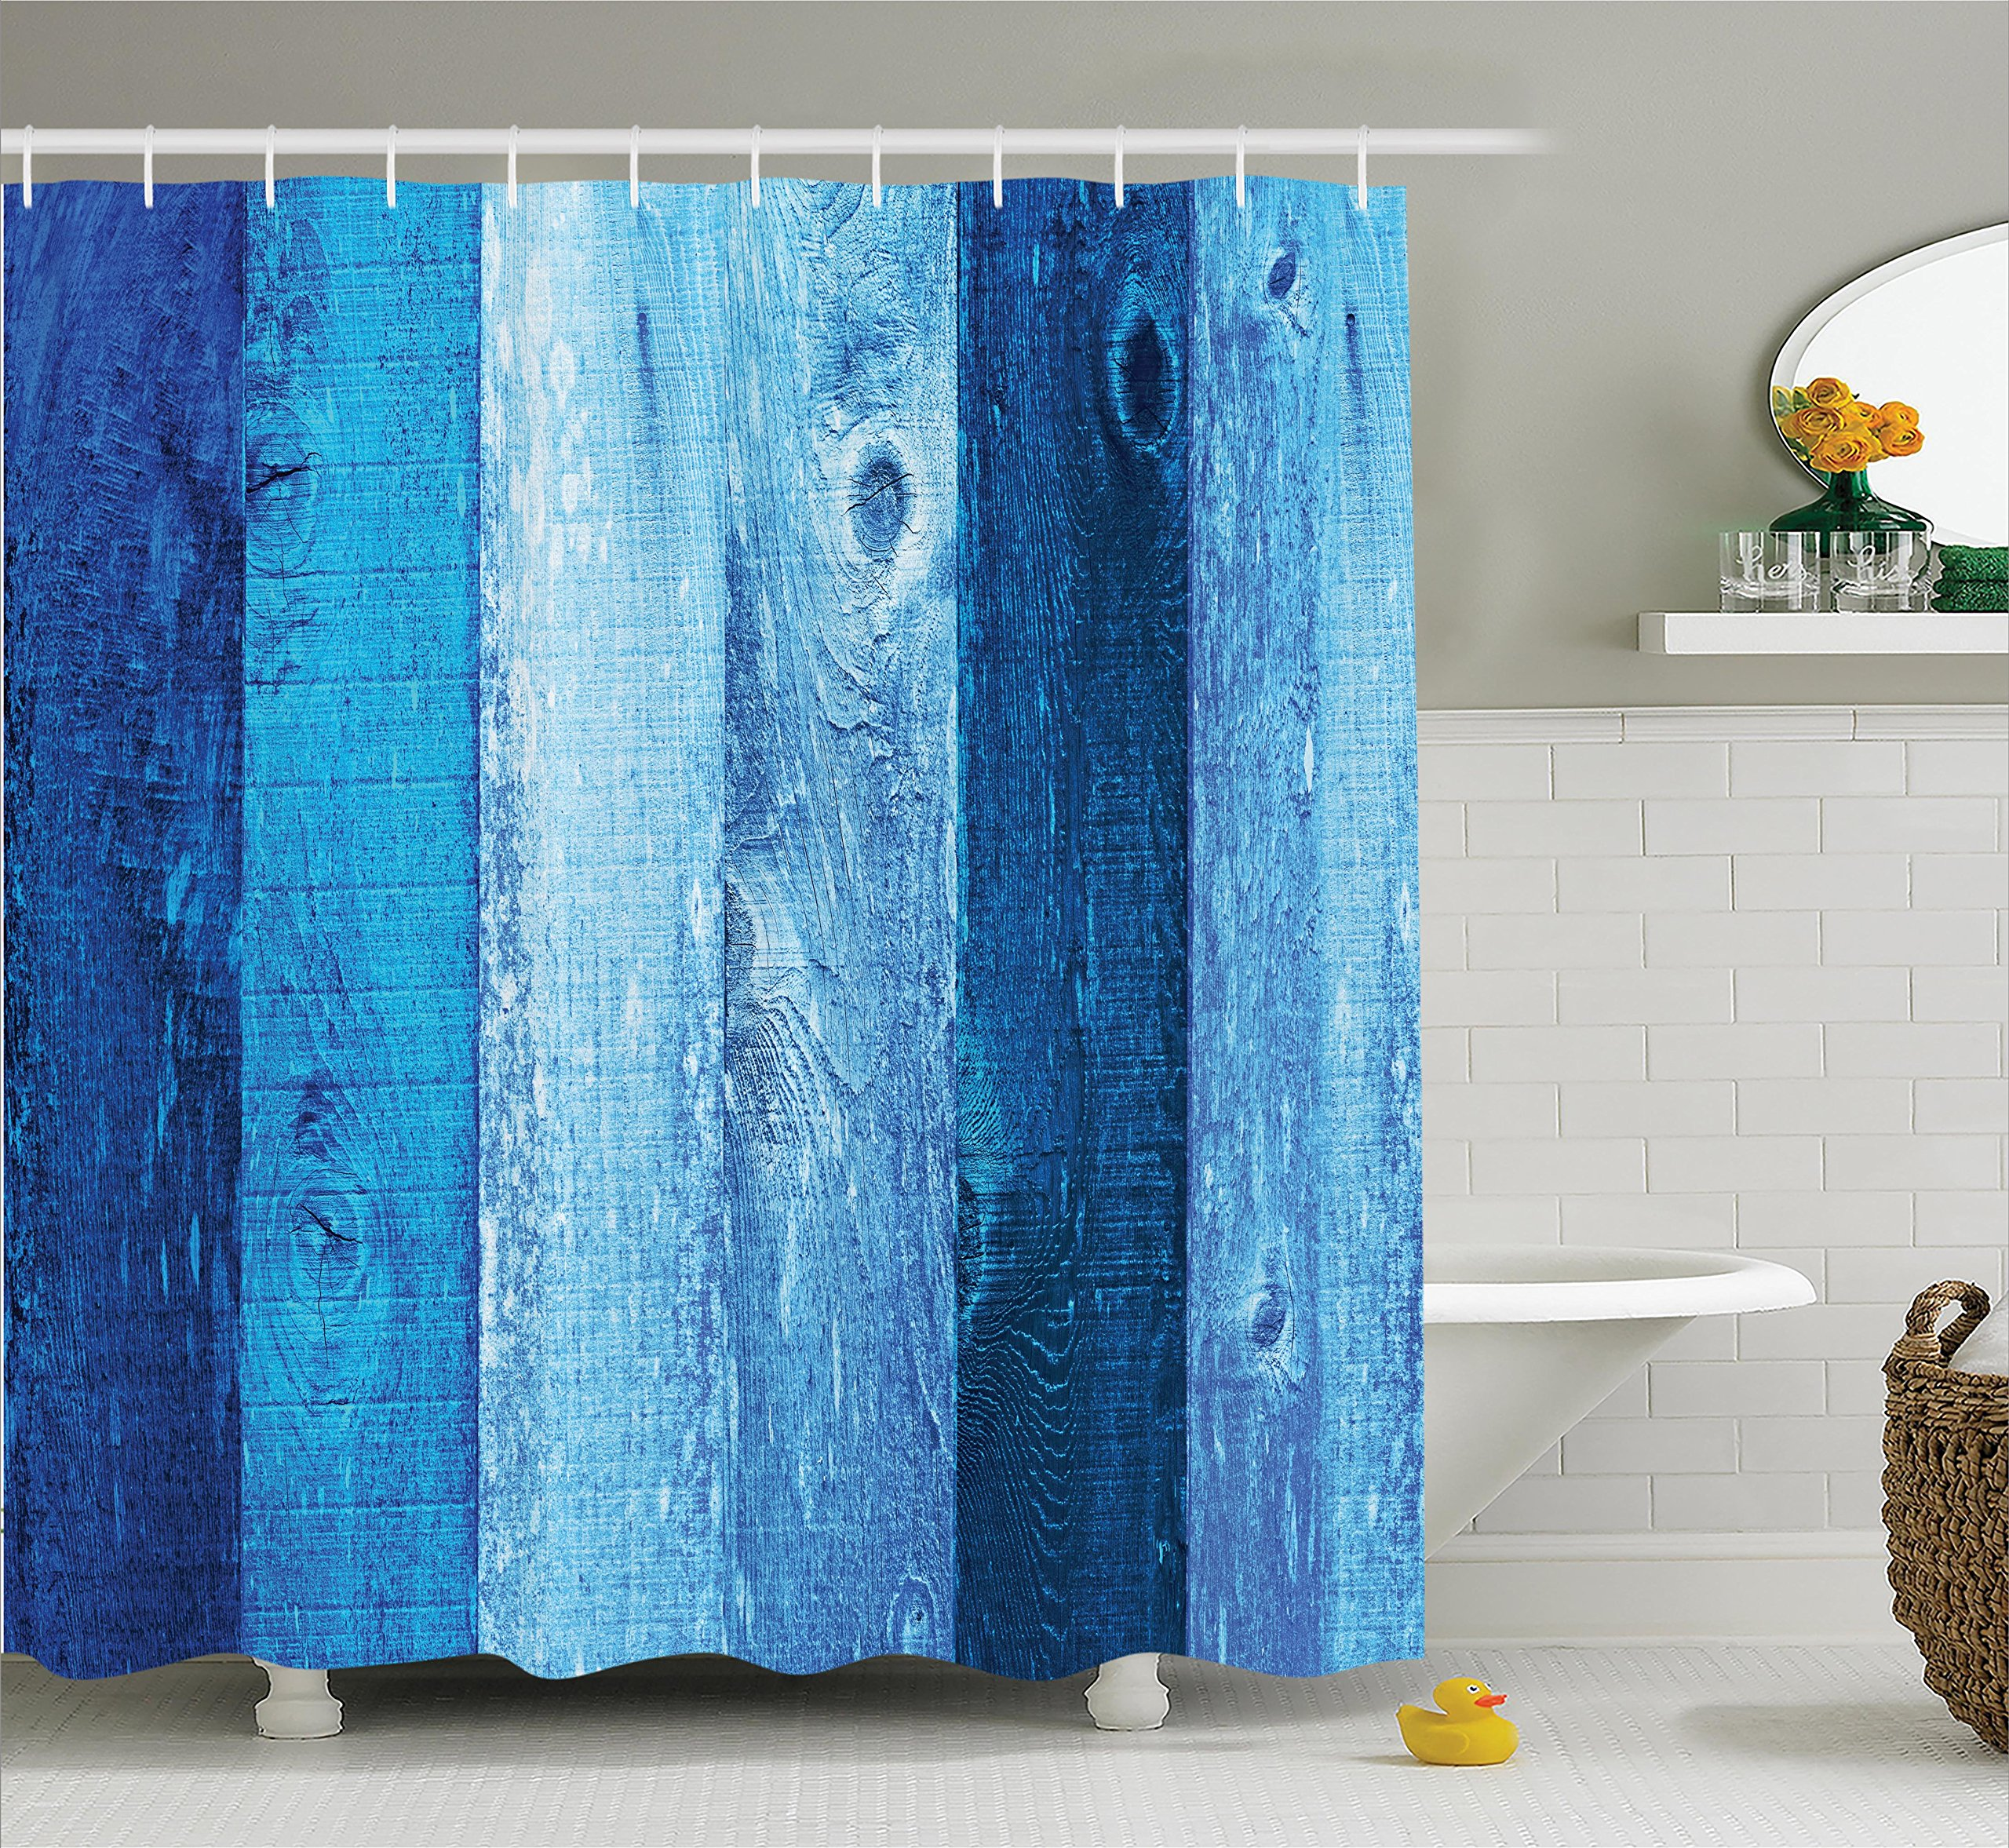 Ambesonne Navy Blue Decor Collection, Distressed Vintage Graphic of Wood in Robins Egg Old Grunge Grain Texture Retro Home, Polyester Fabric Bathroom Shower Curtain, 75 Inches Long, Dark Blue